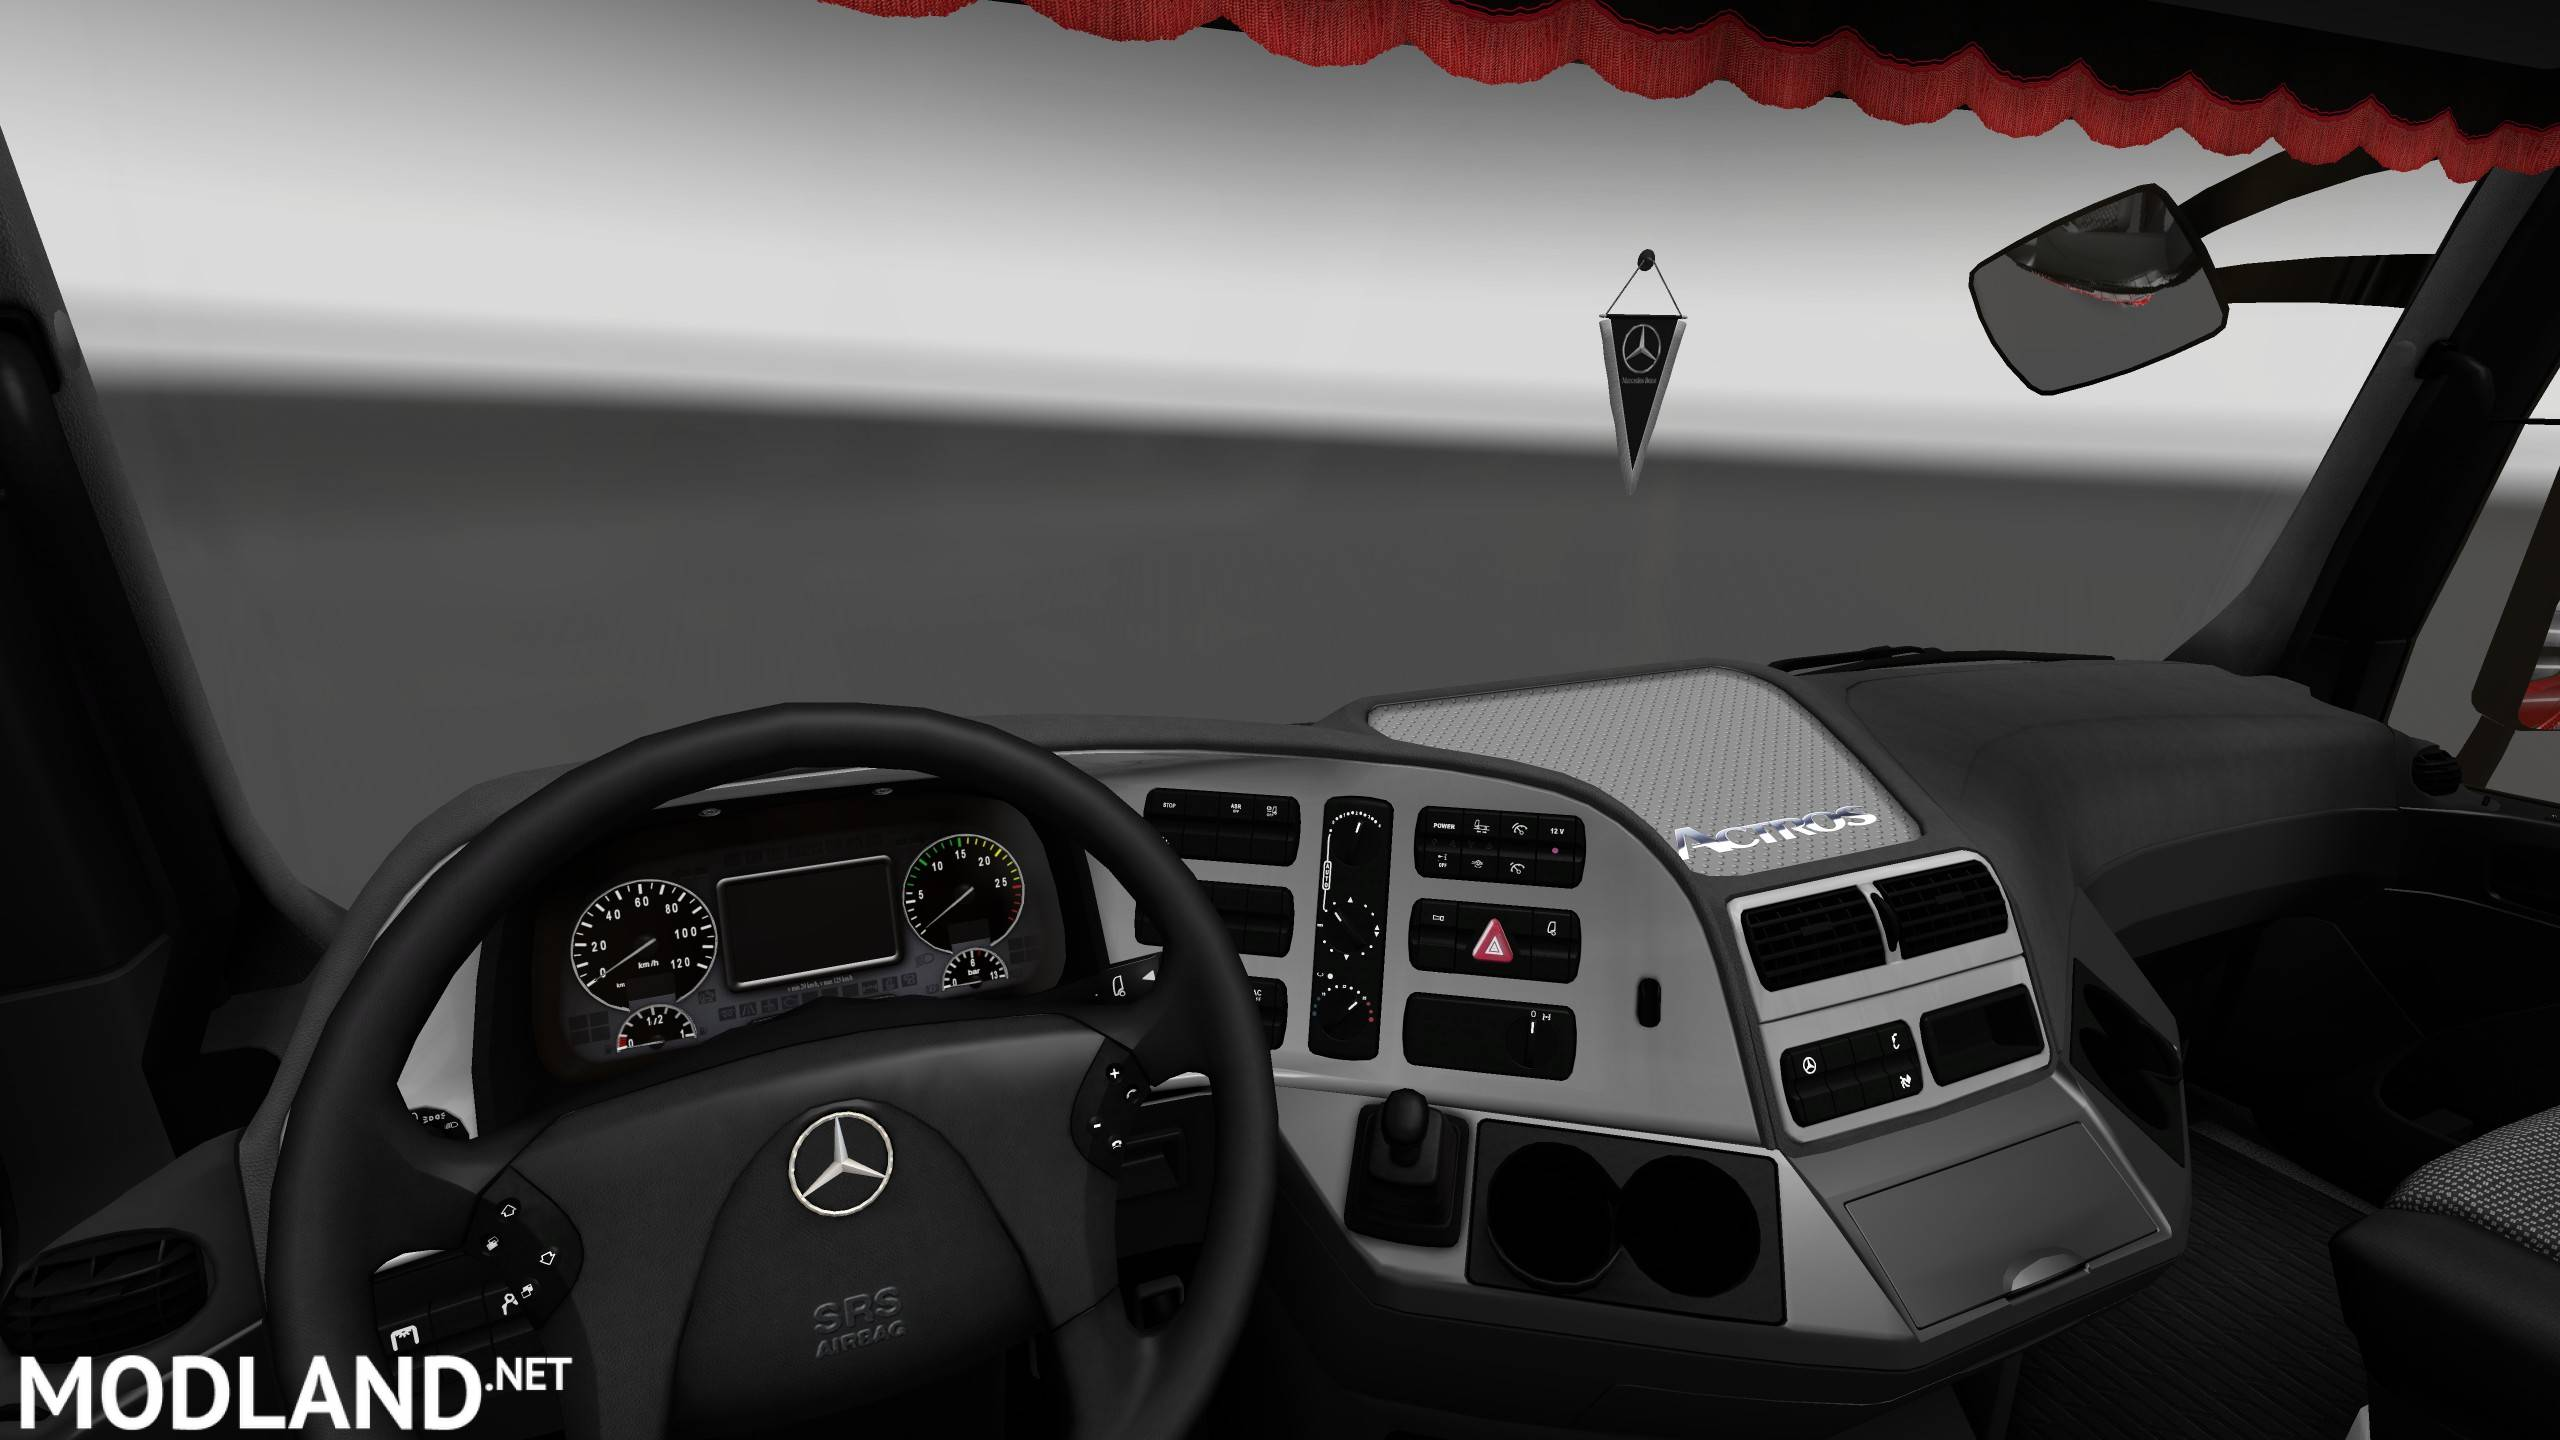 Mercedes Benz Actros Mp3 Interior Exterior Rework Ver 1 1